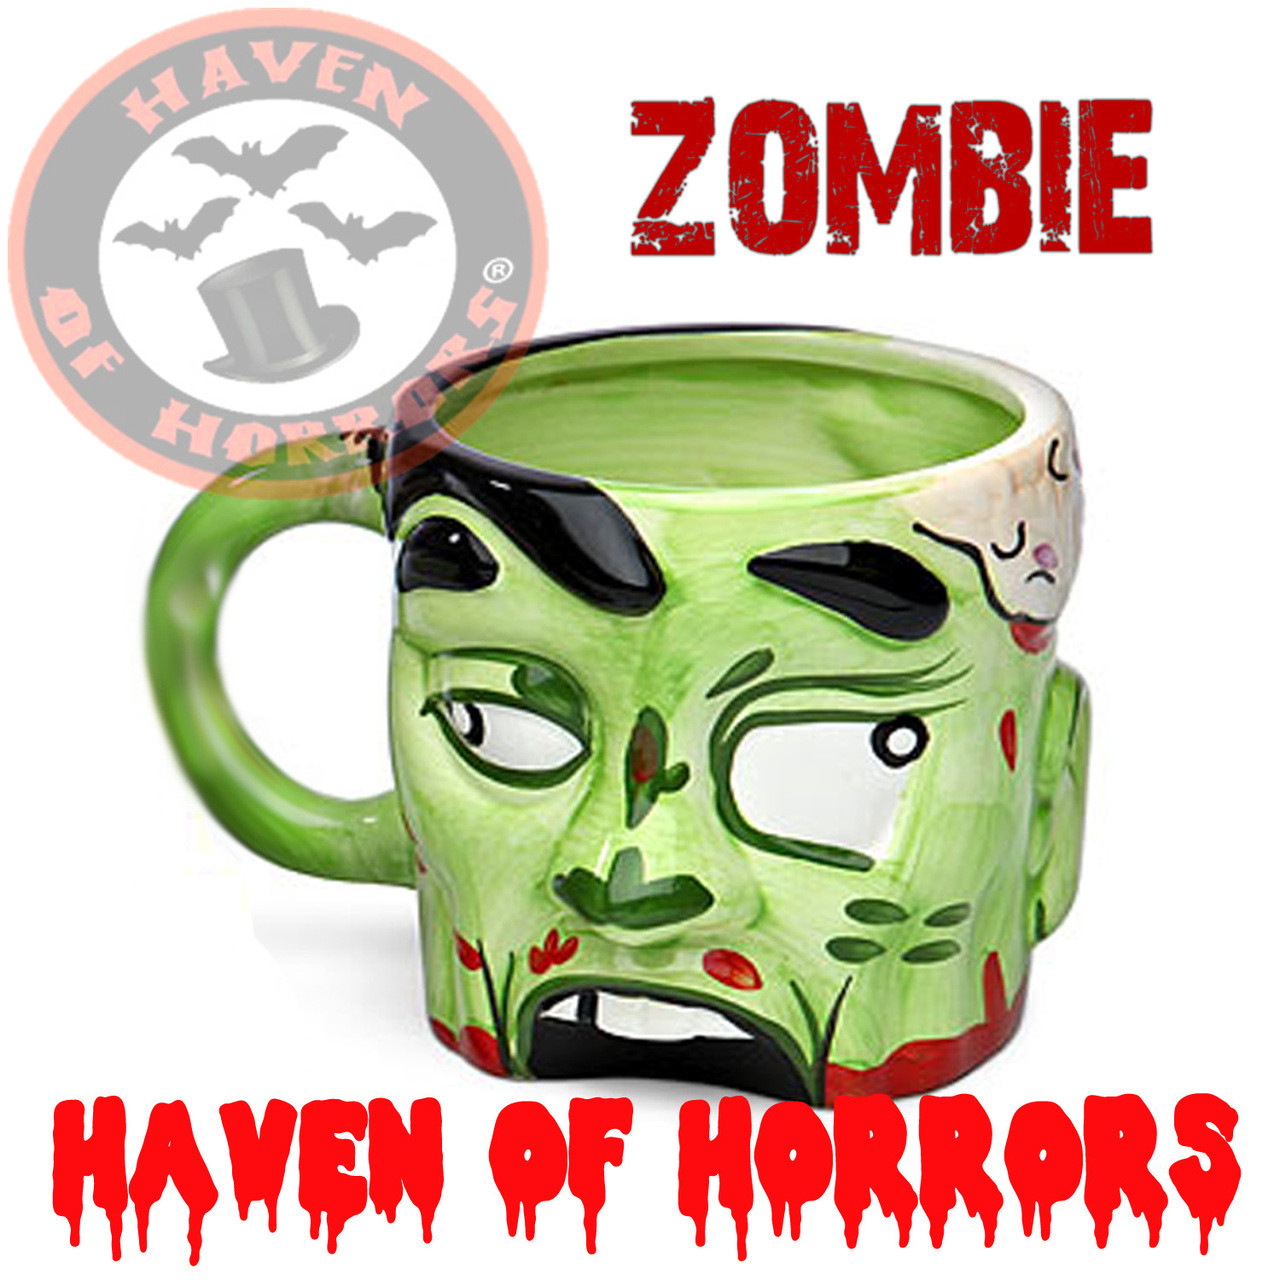 Head Mug Ceramic Zombie Zombie Male Head Zombie Ceramic Male Head Mug Yyg7fb6